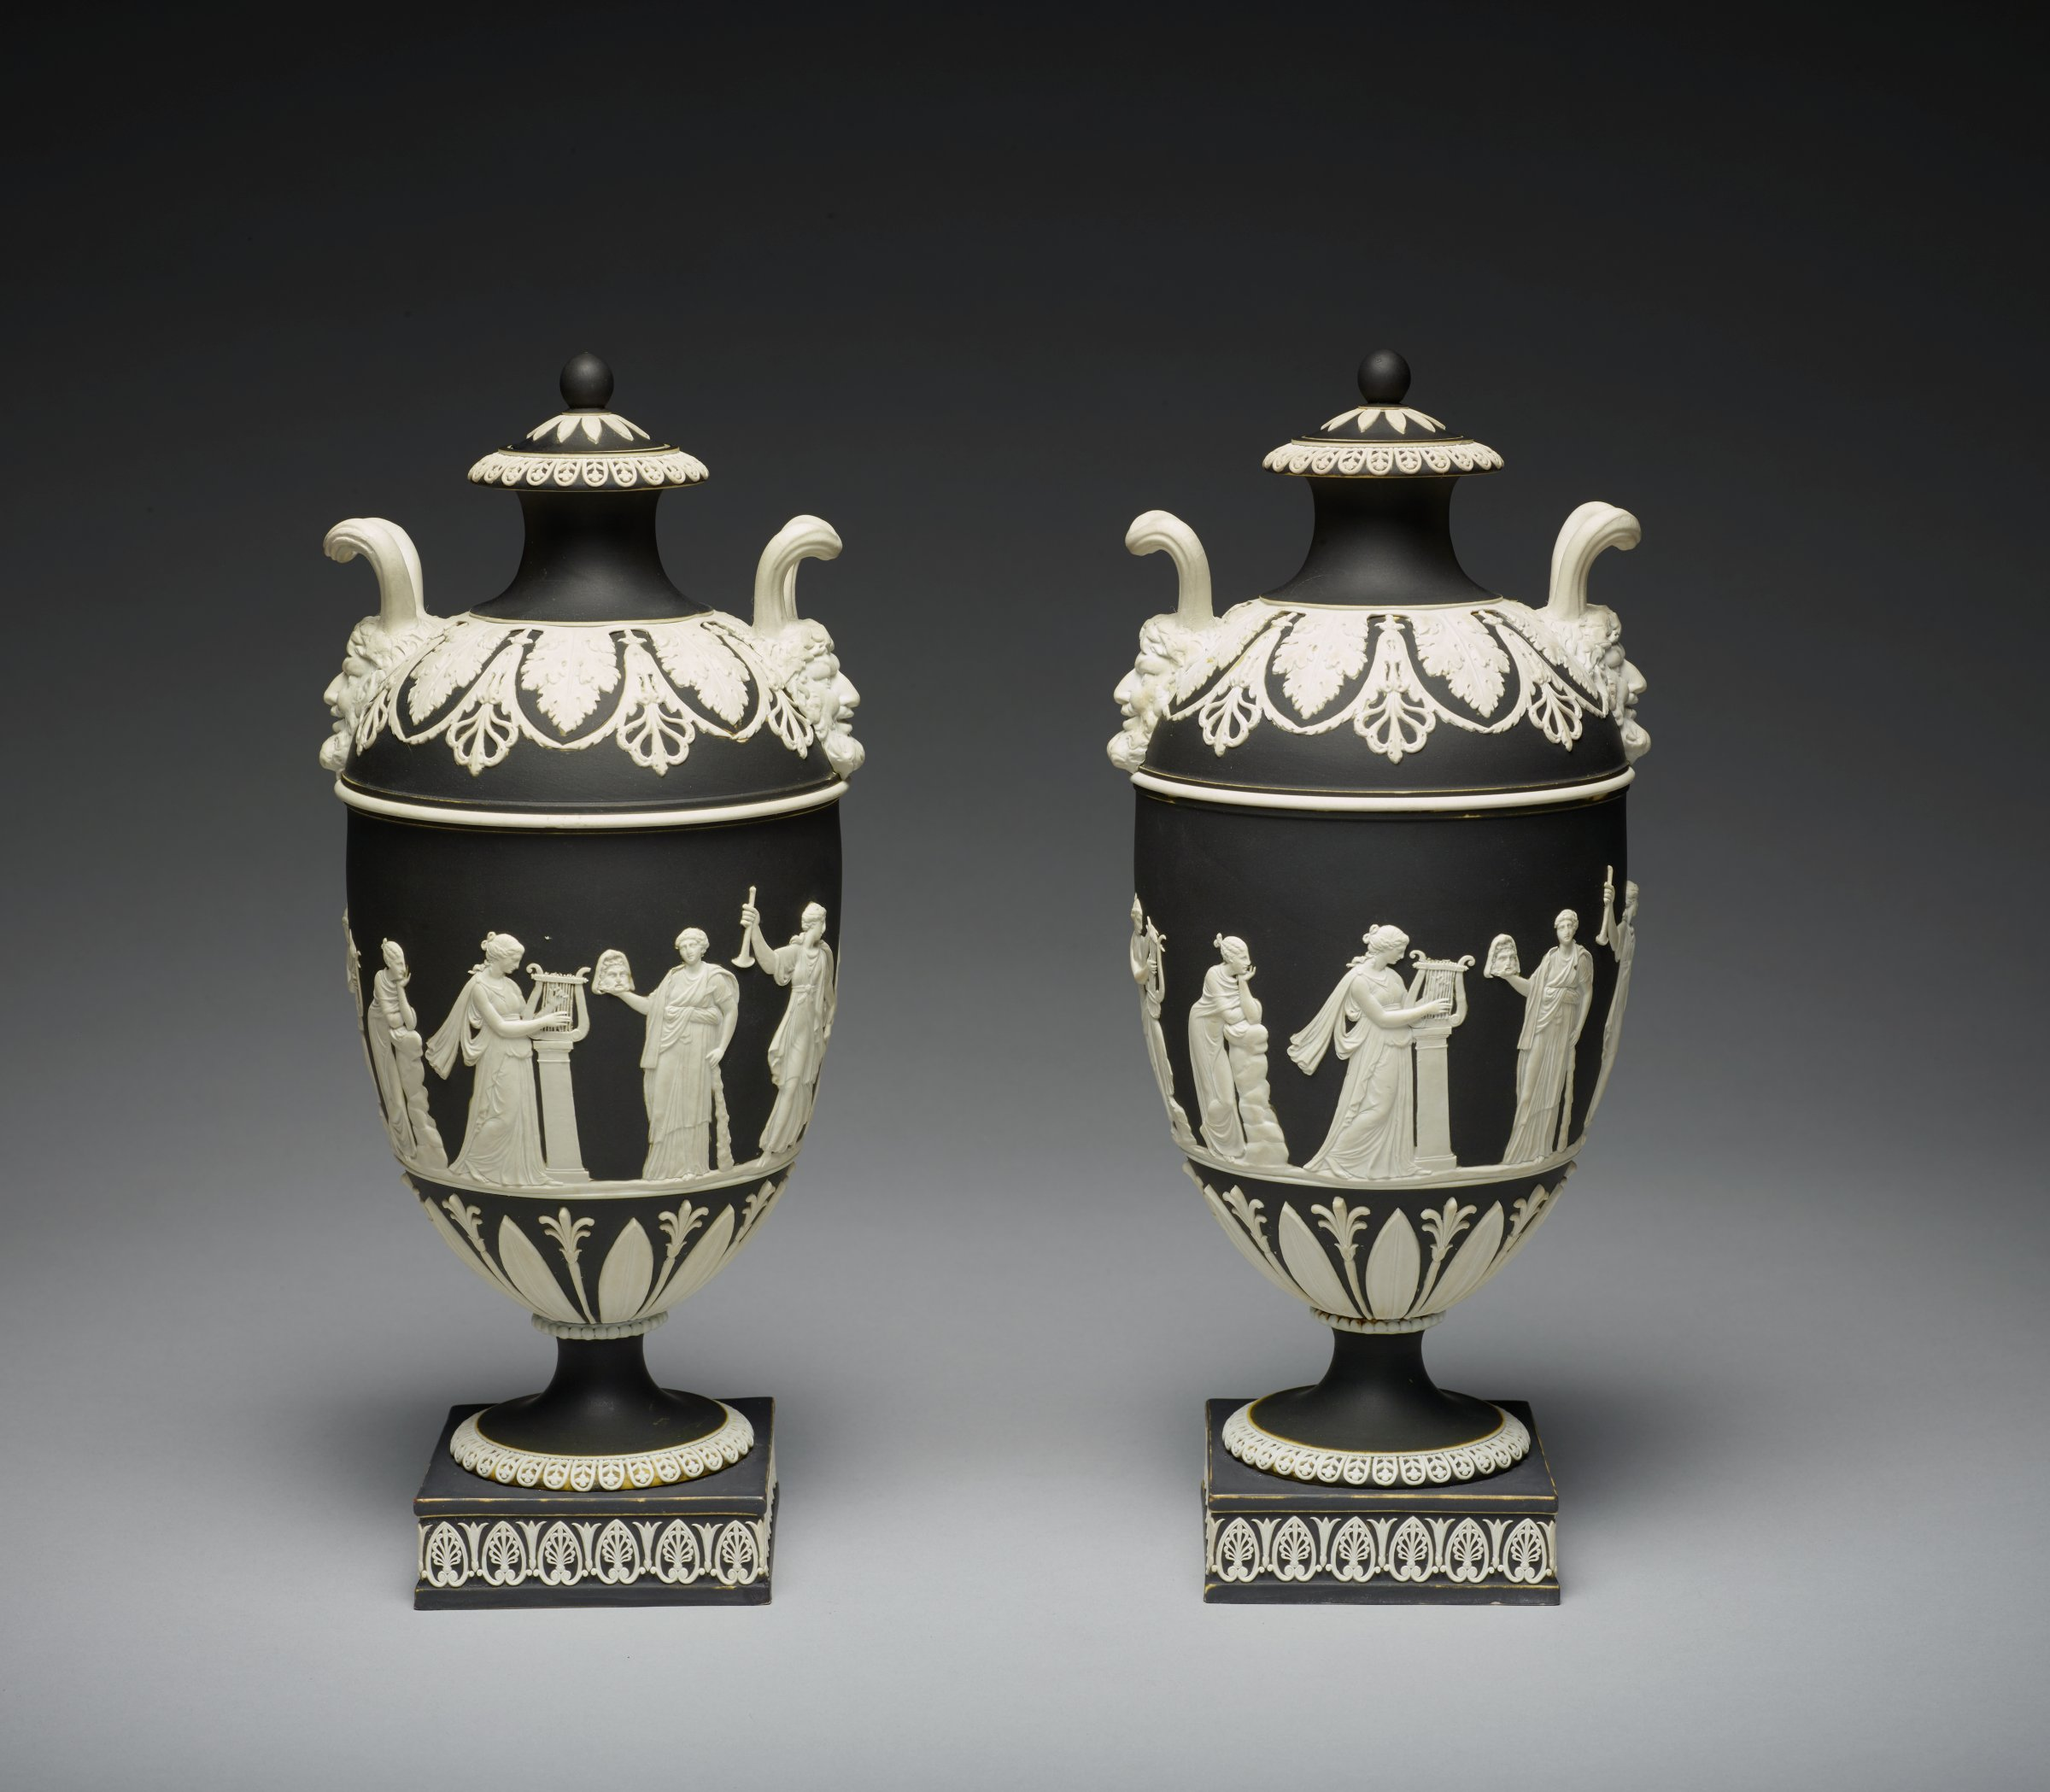 Pair of white jasper urns with black jasper dip and white relief decoration, each on a square plinth with anthemion motifs around, round foot with floral motifs and beading on the stem, the lower body with stiff leaf and lotus motifs and the main body with scene of Apollo and the Muses (one vase does not have the Apollo figure) and above this a band of white, the shoulder decorated with acanthus leaves and leafy anthemion motifs, the terminals of the handles comprised of satyr masks, whose fluted horns extend up and connect to form an angular loop handle, with plain neck and flared lip with like floral band, the small conforming cover with stiff leaf elements and ball finial, the interiors white and with sump covers.